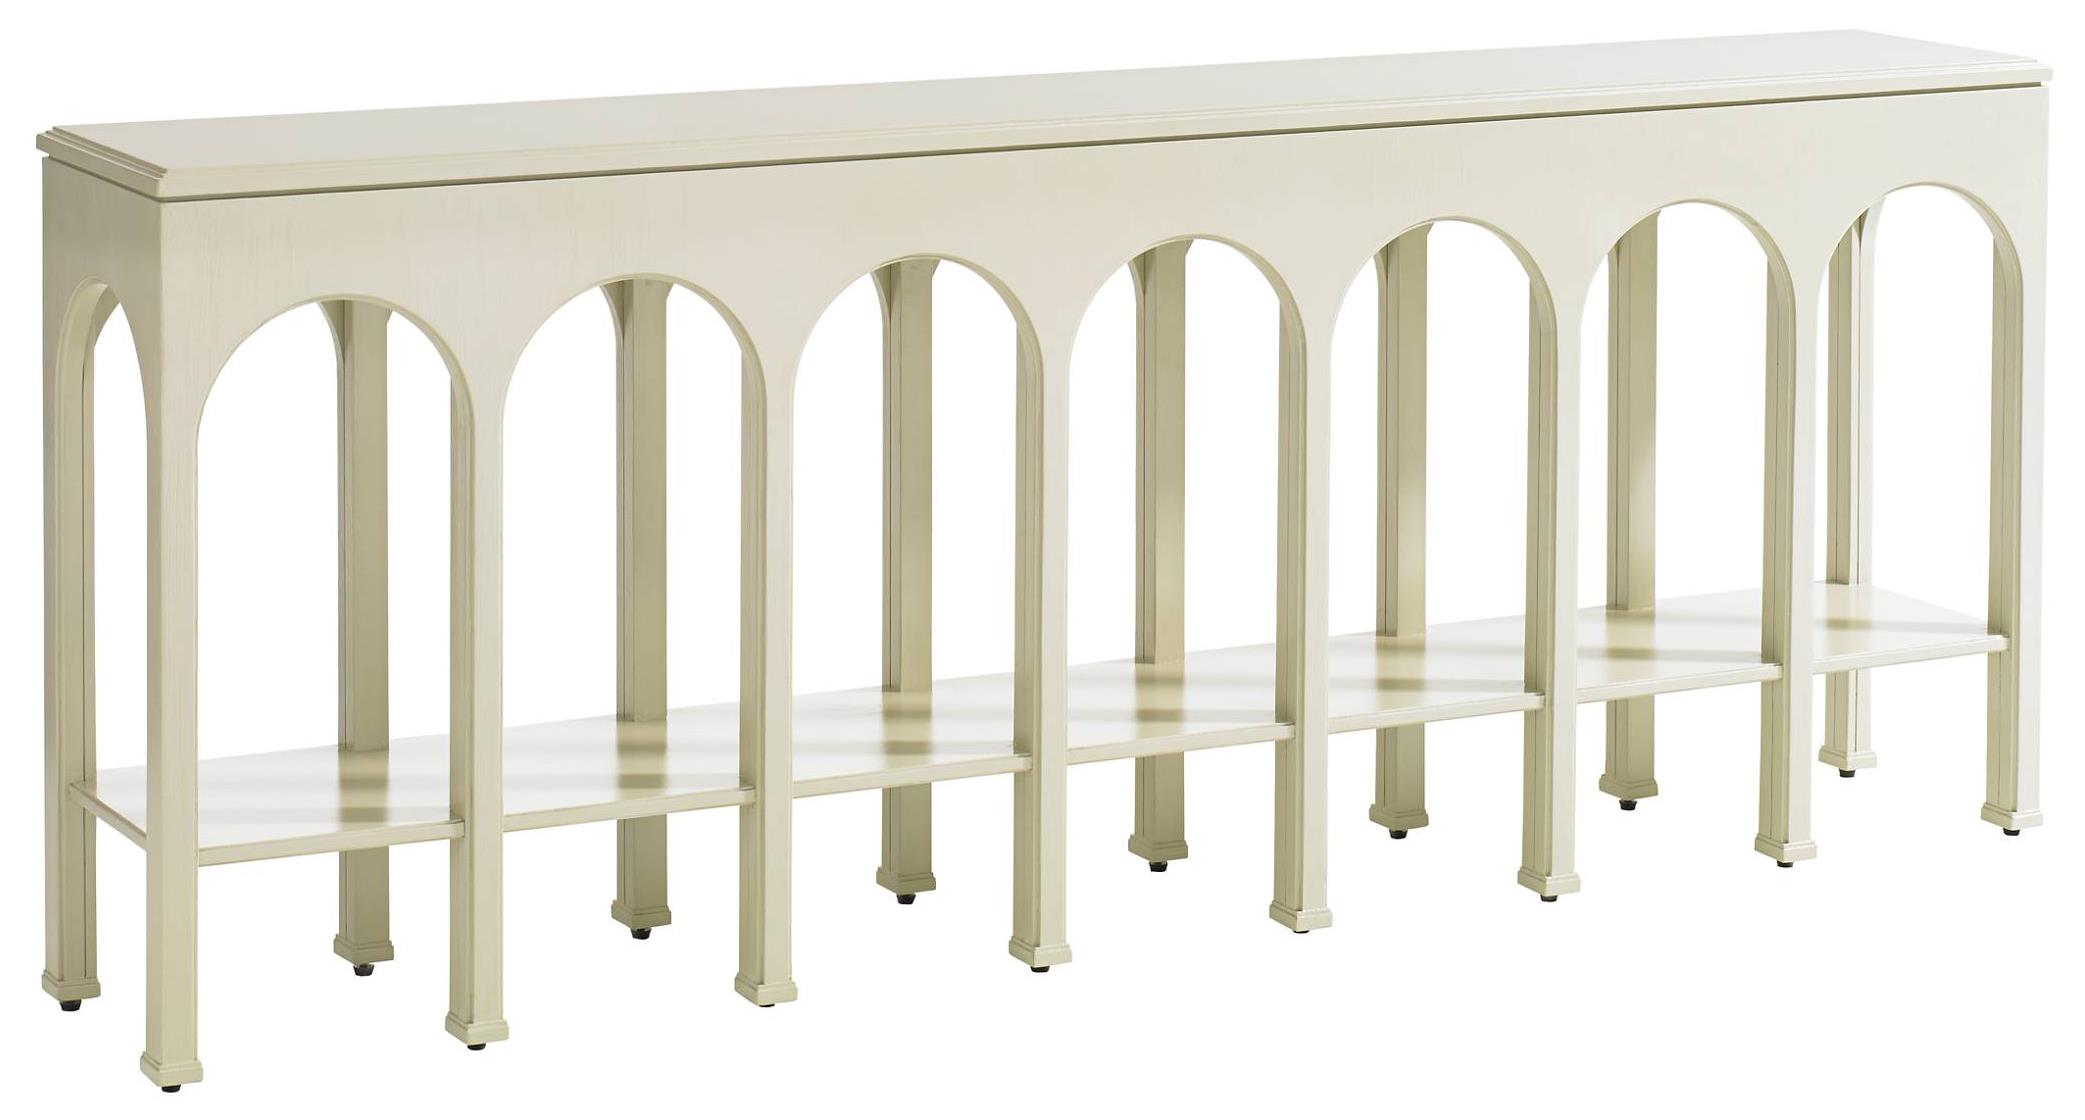 Stanley Furniture Crestaire Brooks Console Table - Item Number: 436-25-05